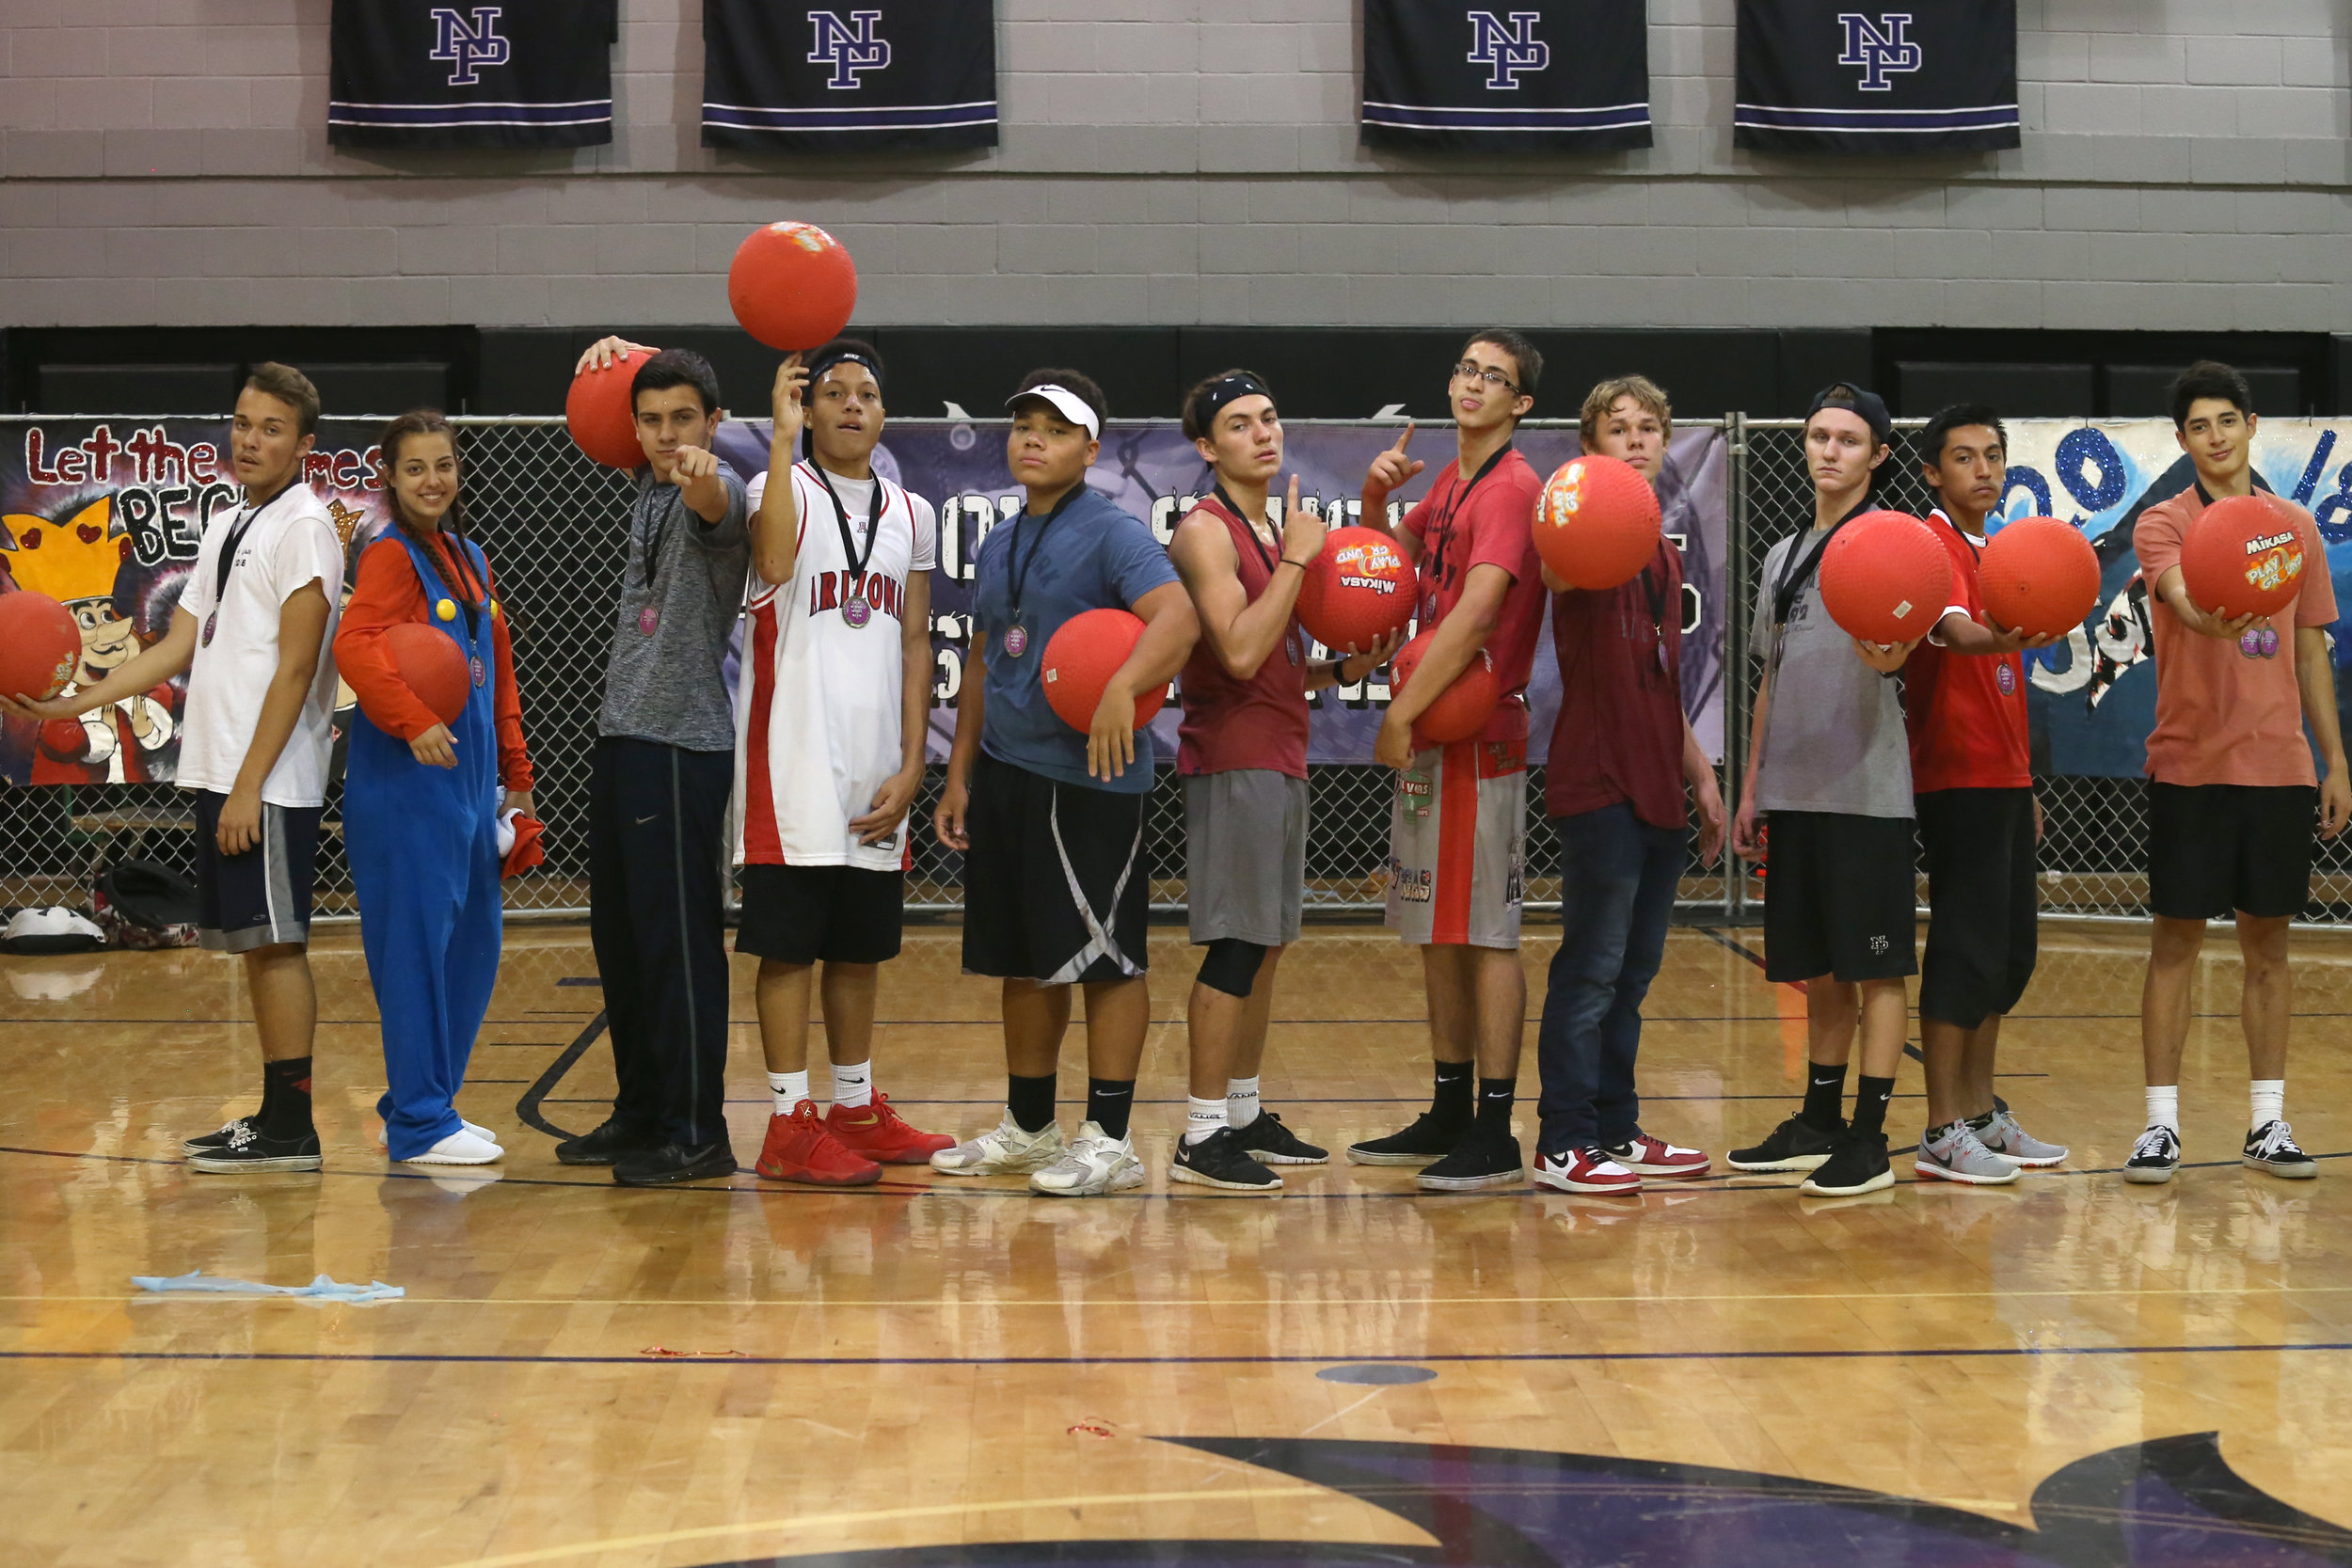 Seniors win Dodgeball Competition